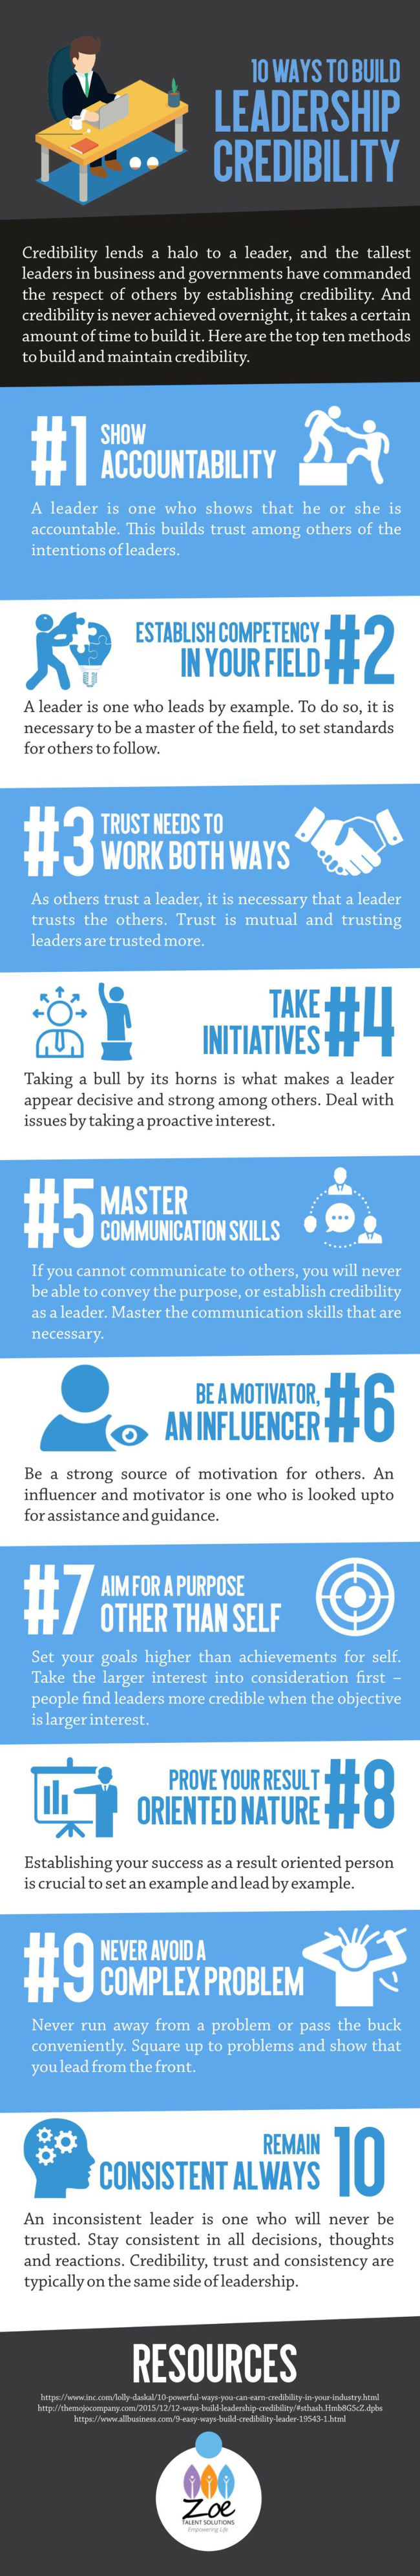 How to Build Credibility as a Leader [Infographic]